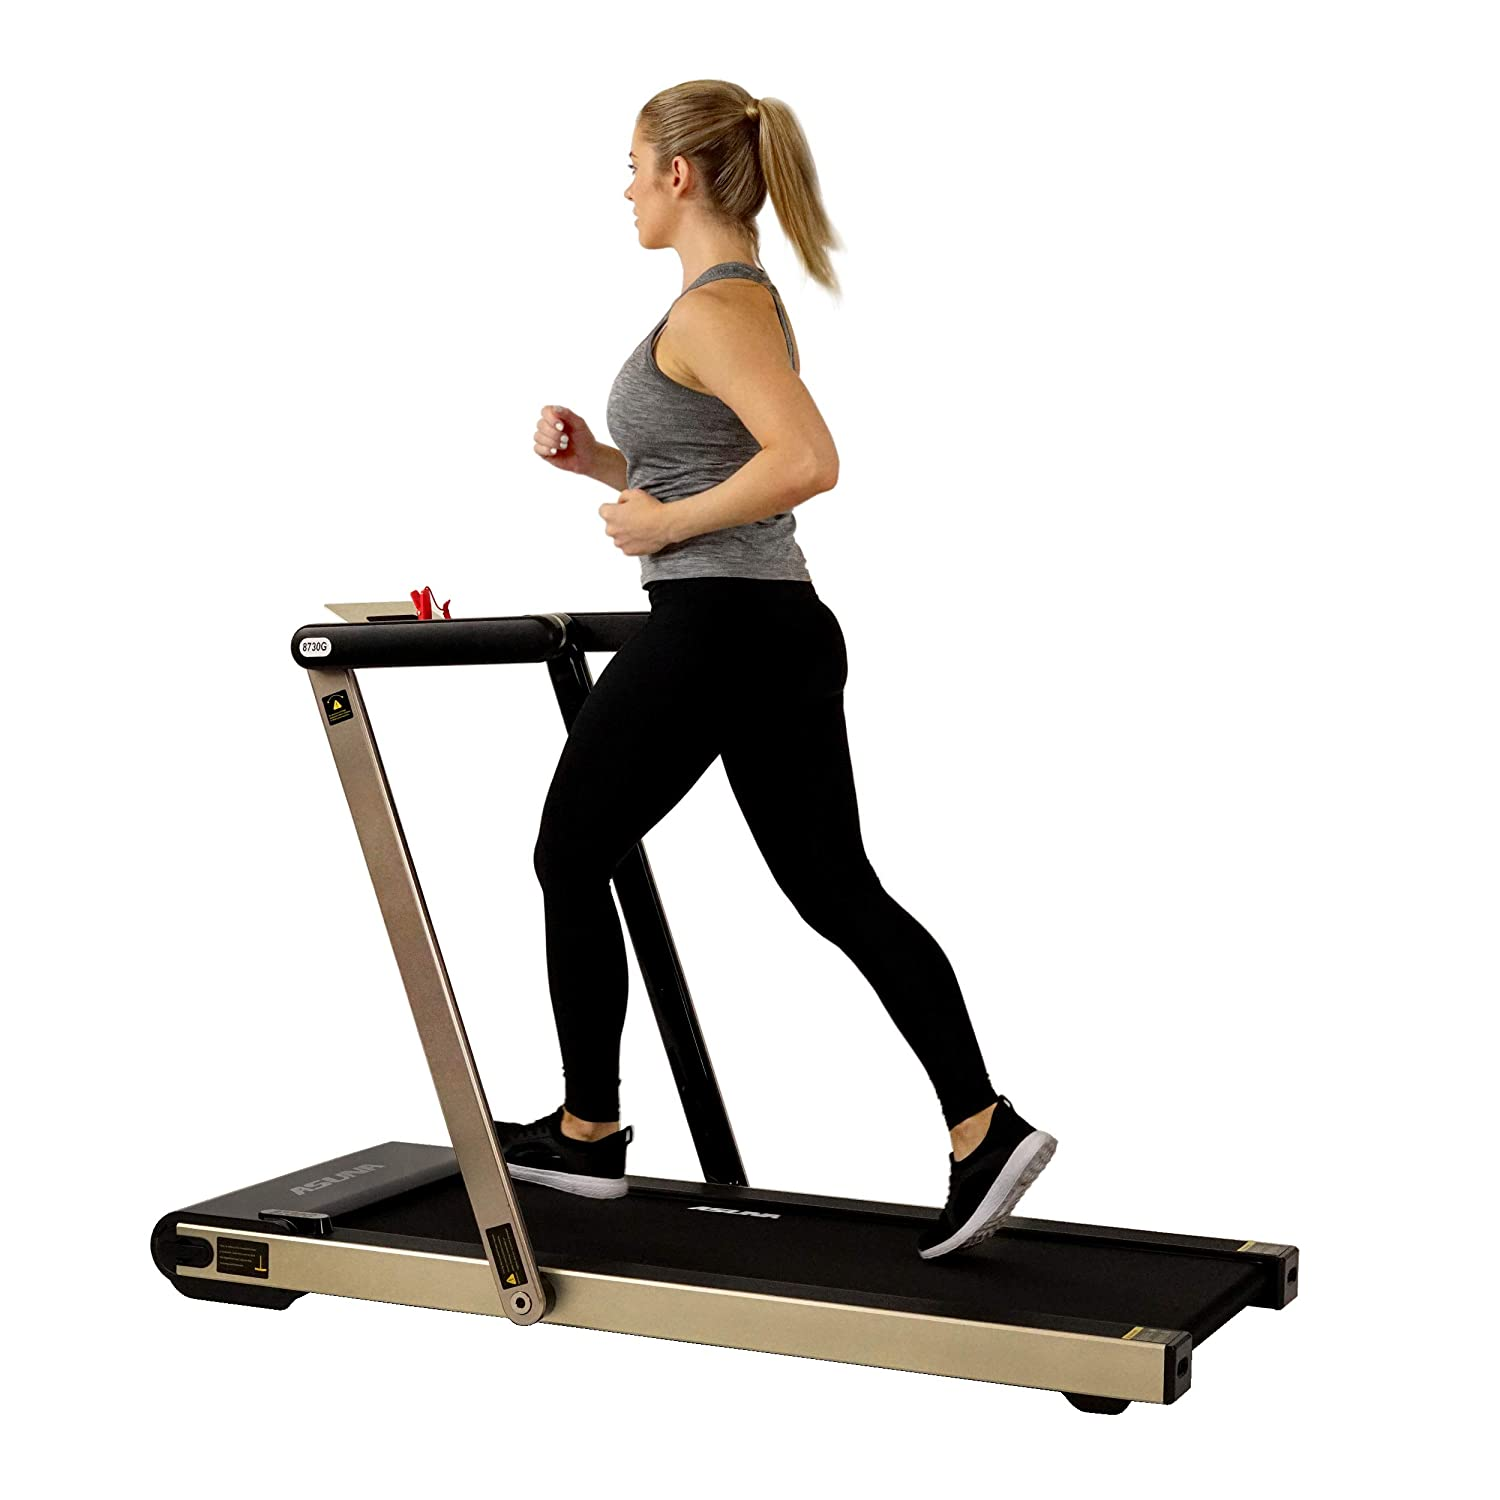 Sunny Health Fitness Asuna Space Saving Treadmill, Motorized with Speakers for AUX Audio Connection – 8730G